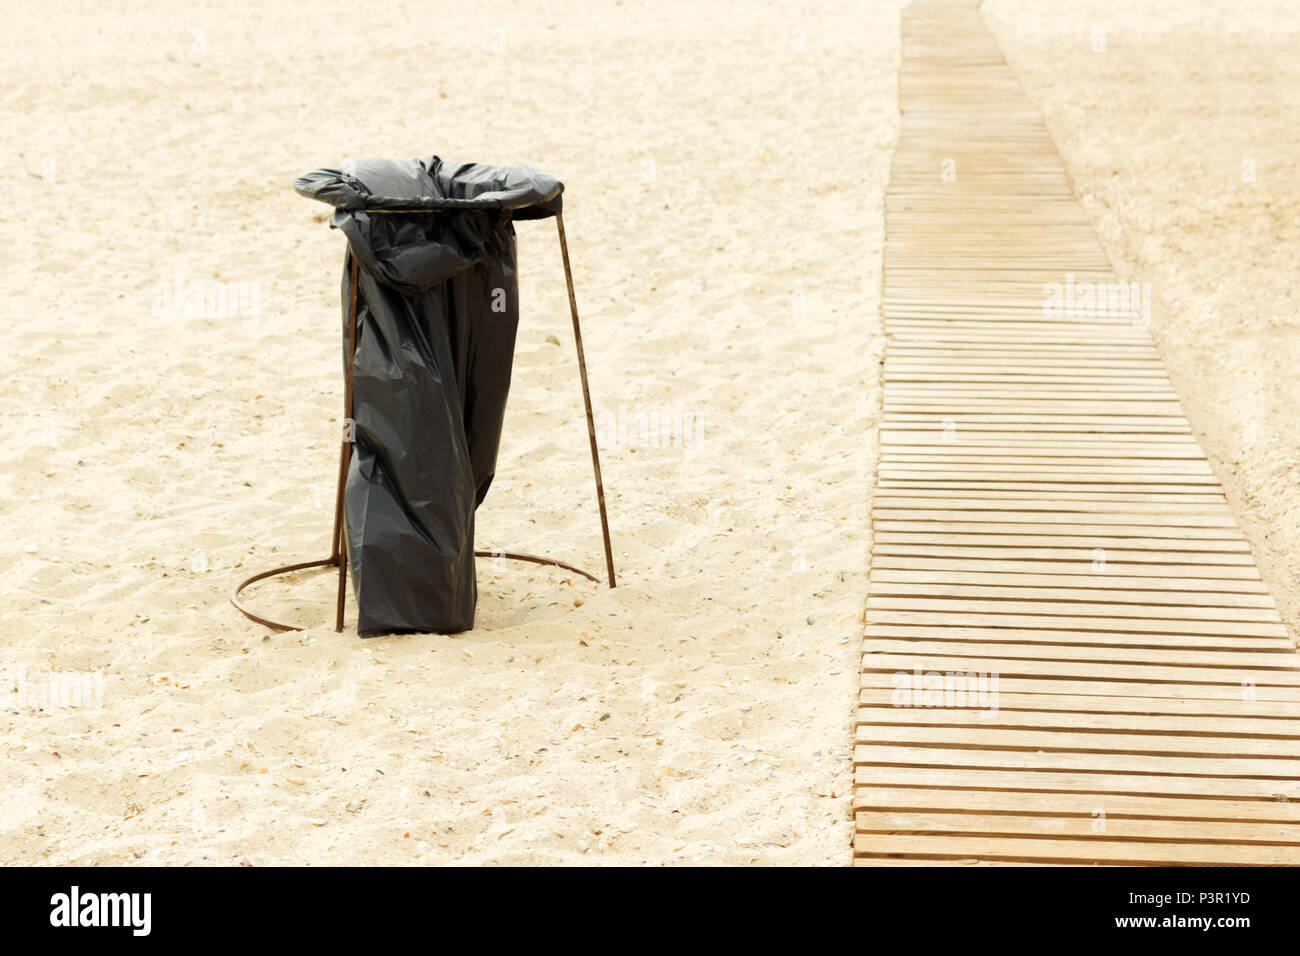 homemade Garbage container from a garbage bag on the beach. - Stock Image